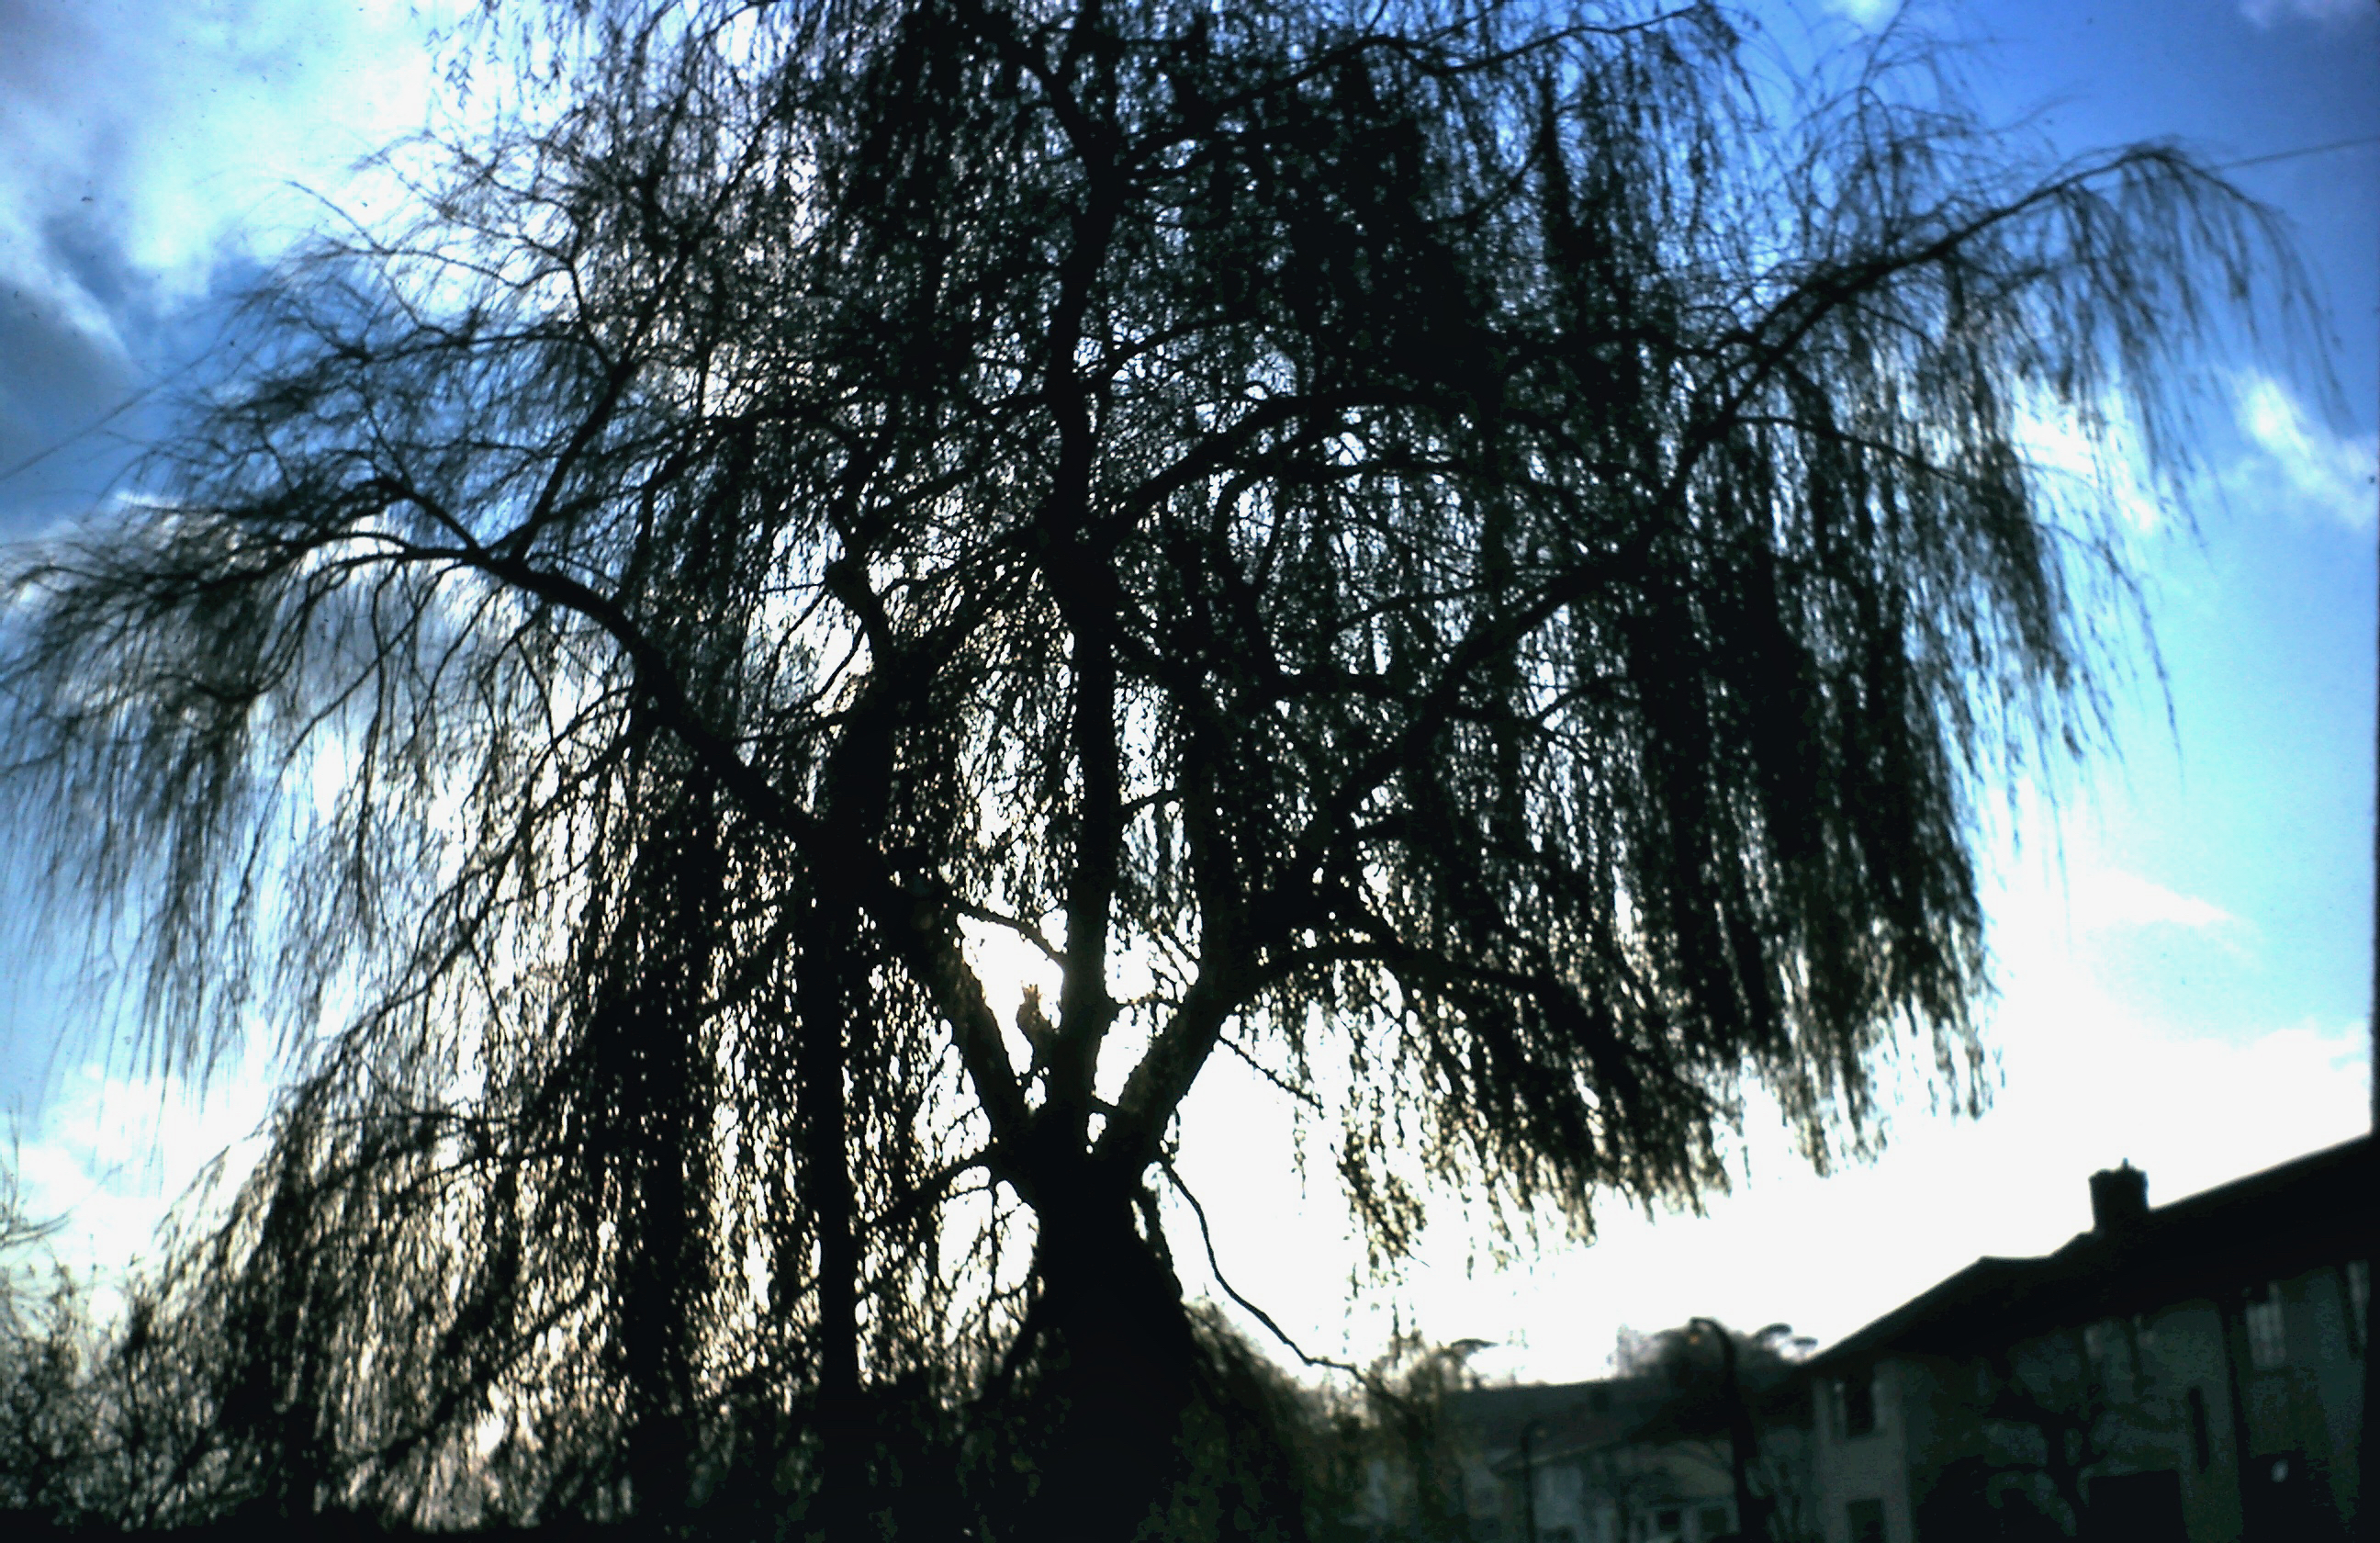 A classic weeping willow silhoutted against a blue and overexposed white sky near a row of nineteen fifties houses